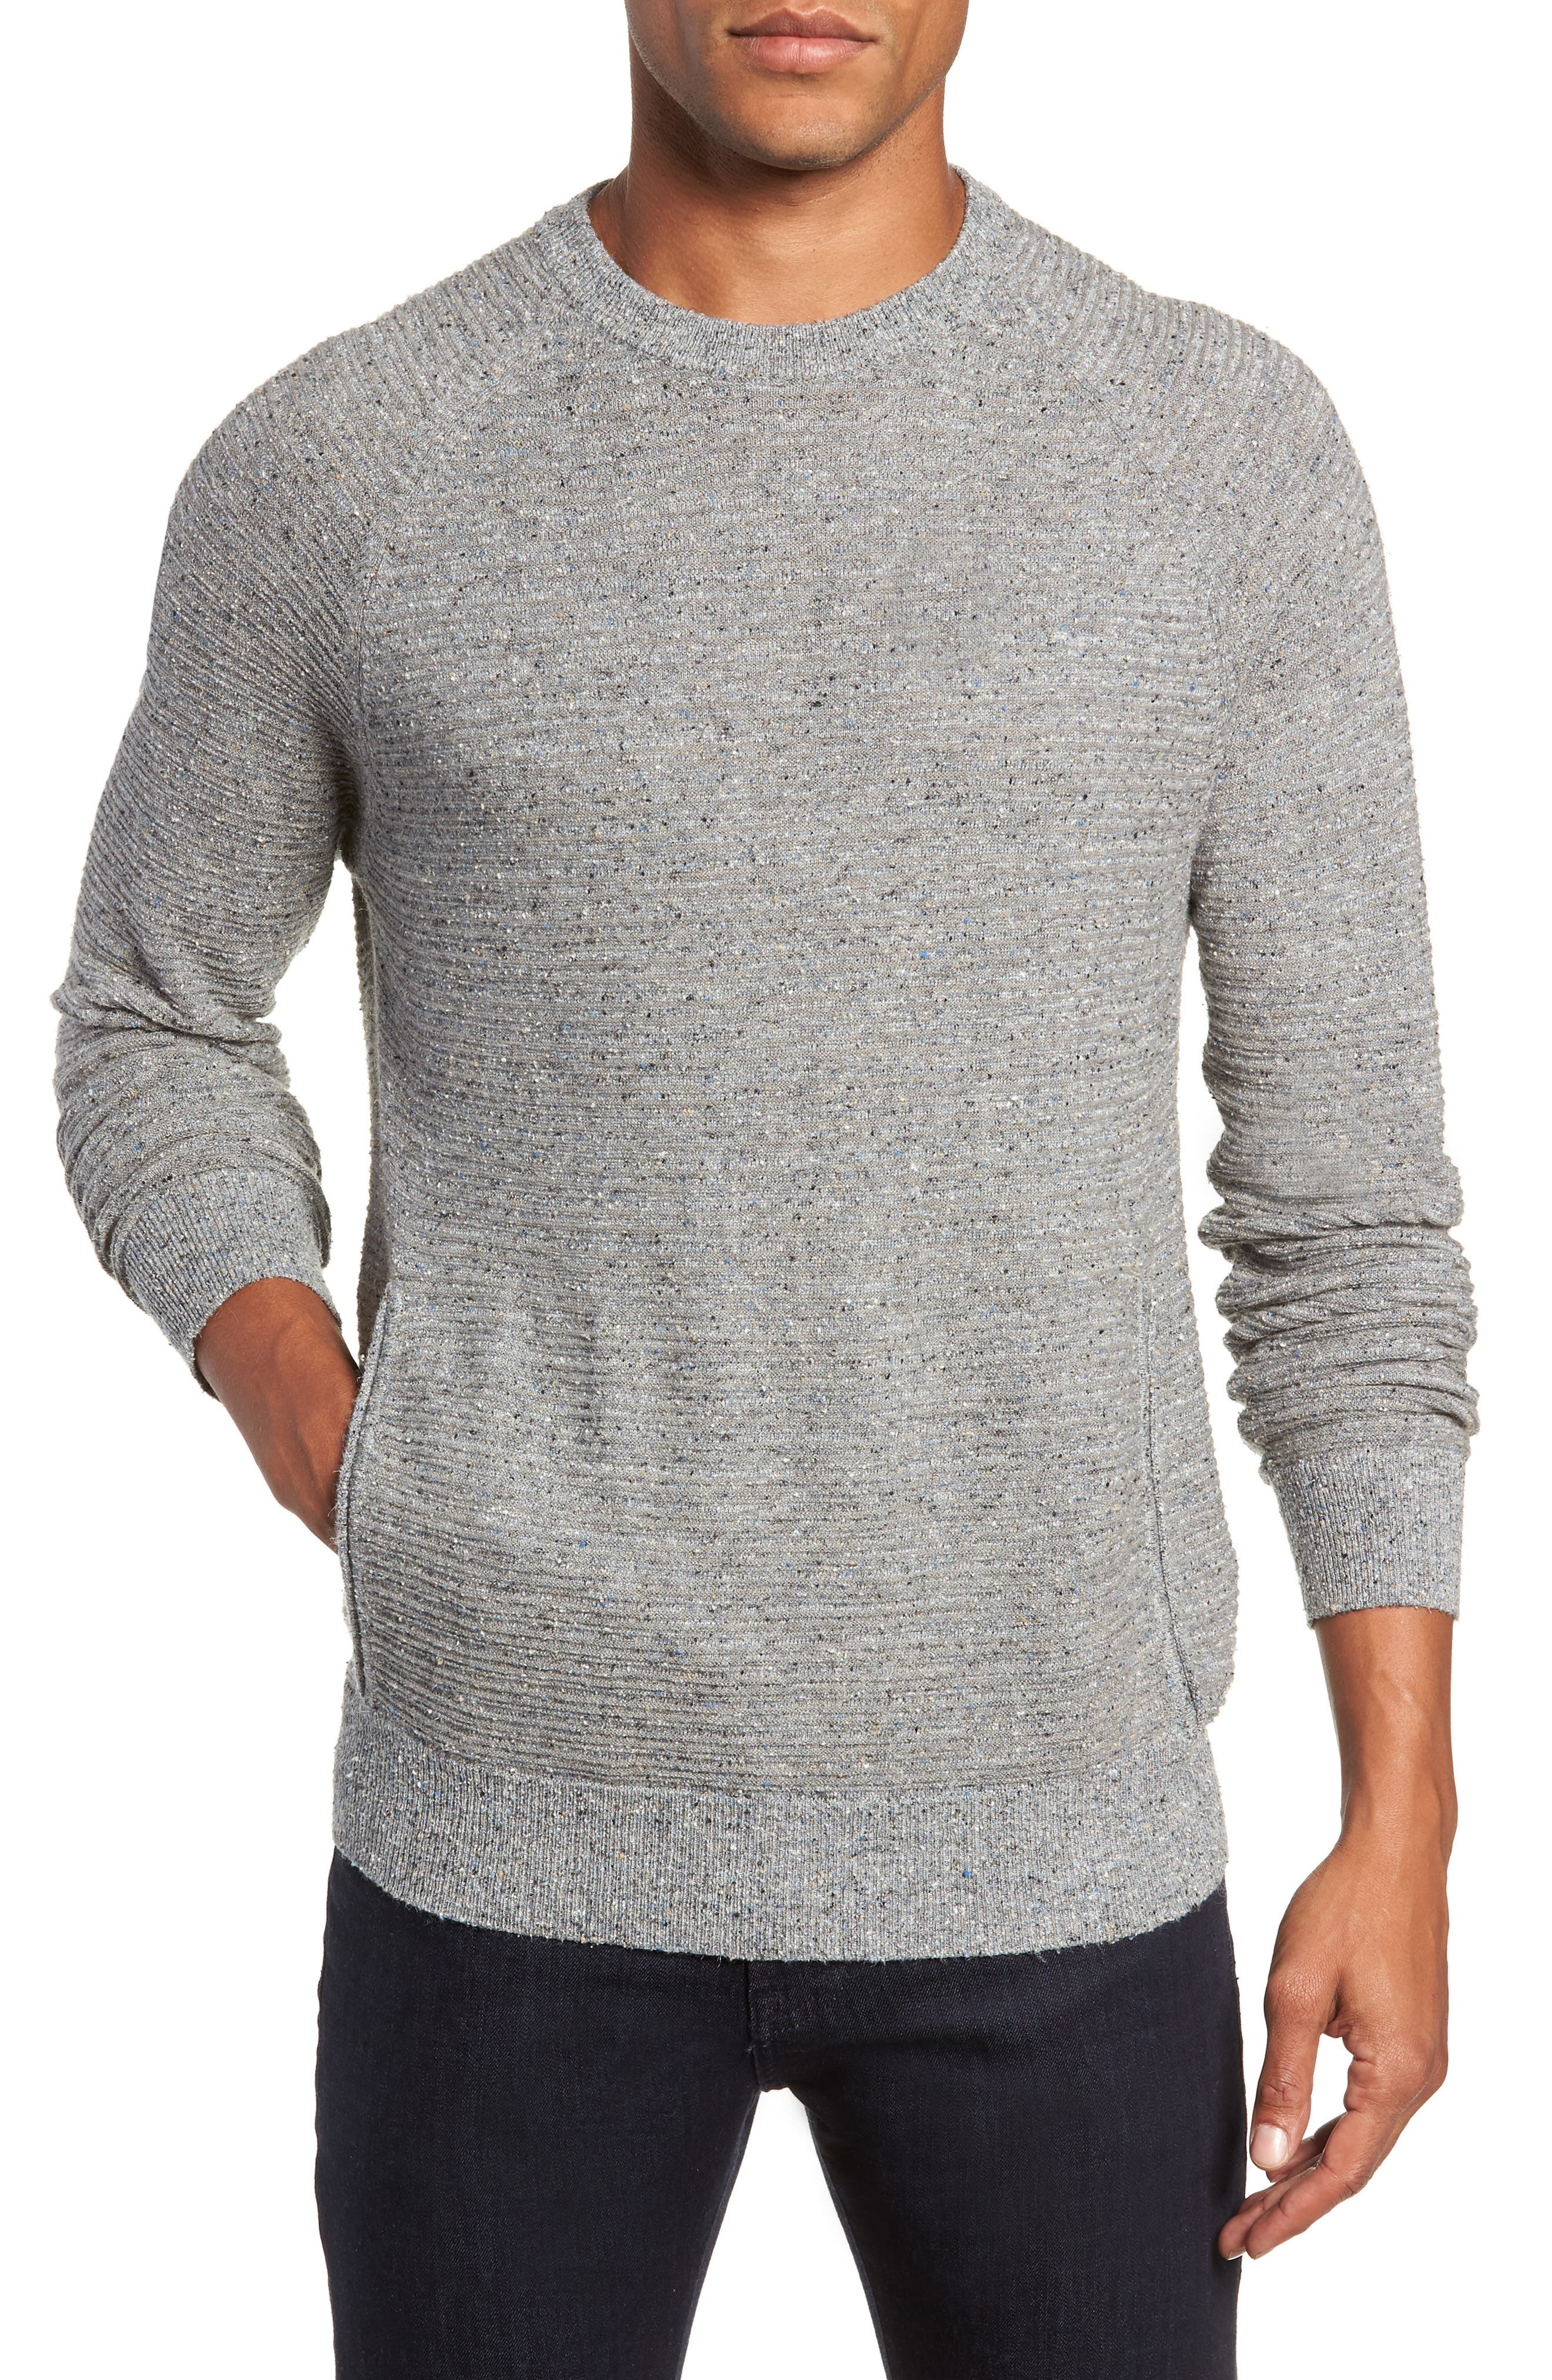 Speckle Stripe Sweater,                         Main,                         color, GREY MIX